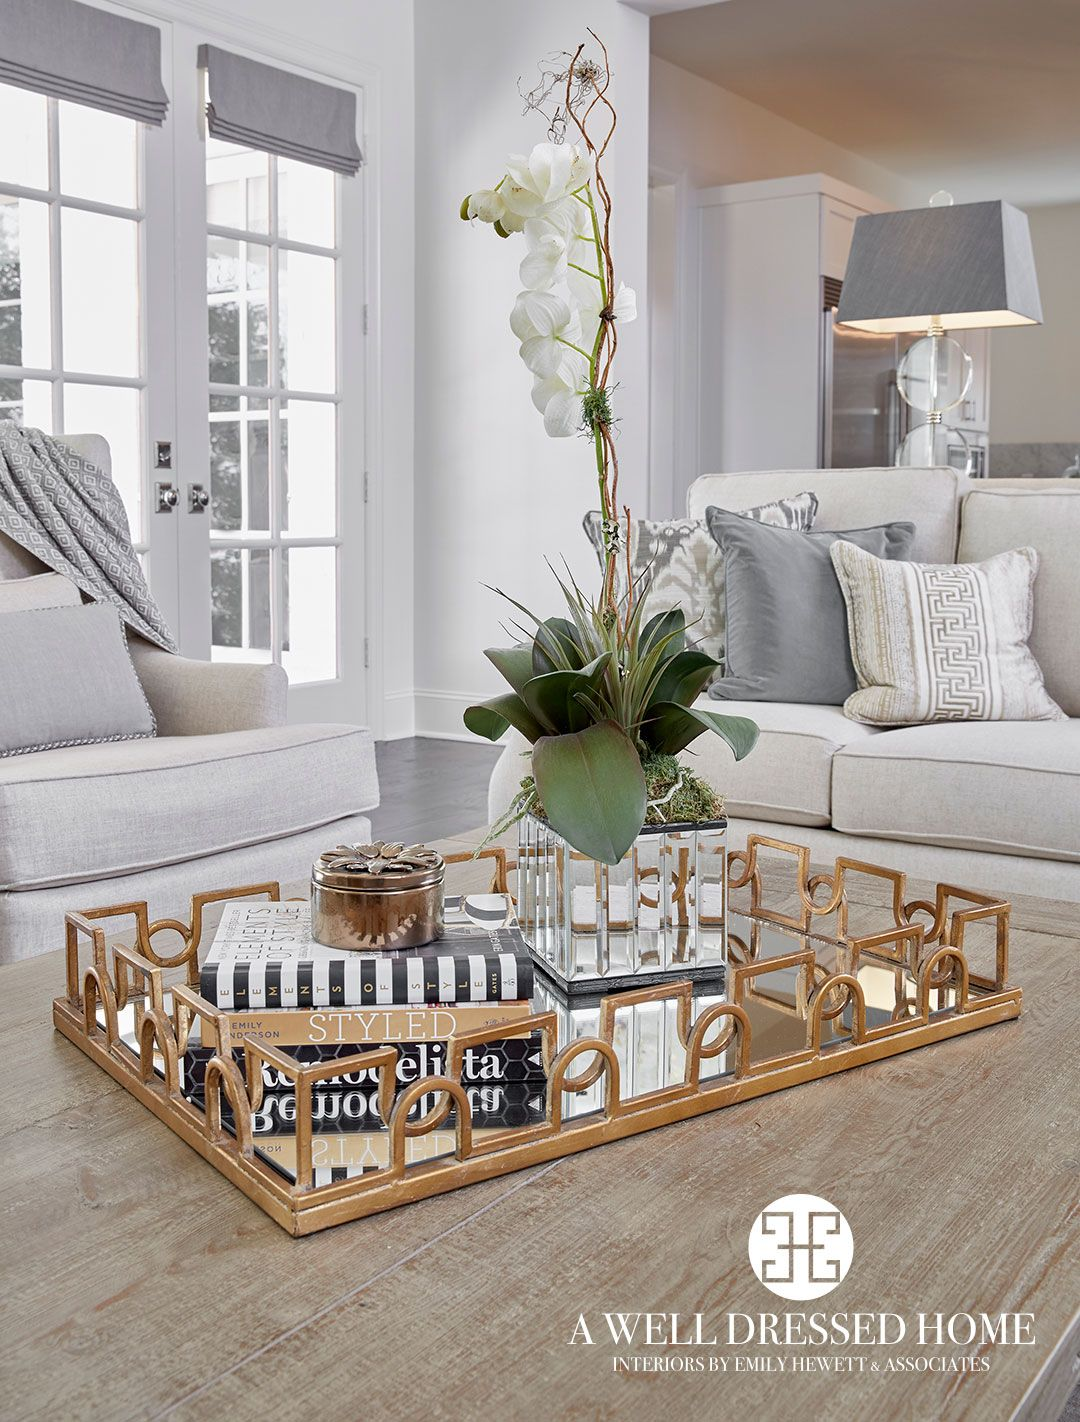 Home interior design accessories gearing u living room  a well dressed home  furniture